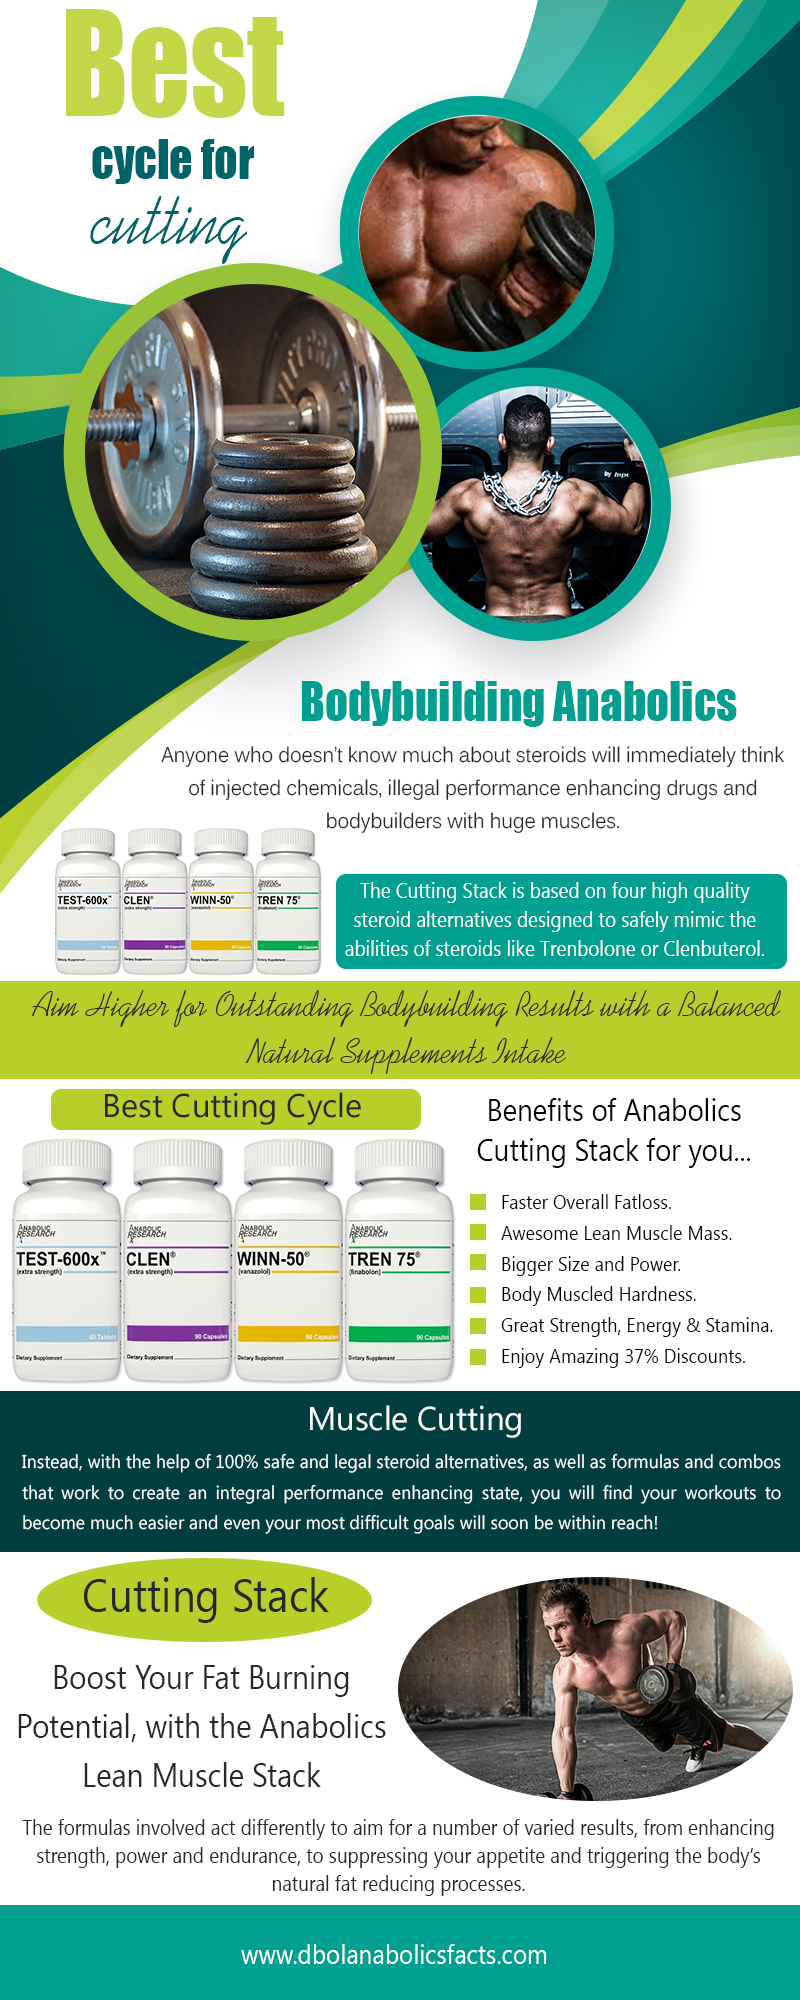 Best Cycles for Cutting